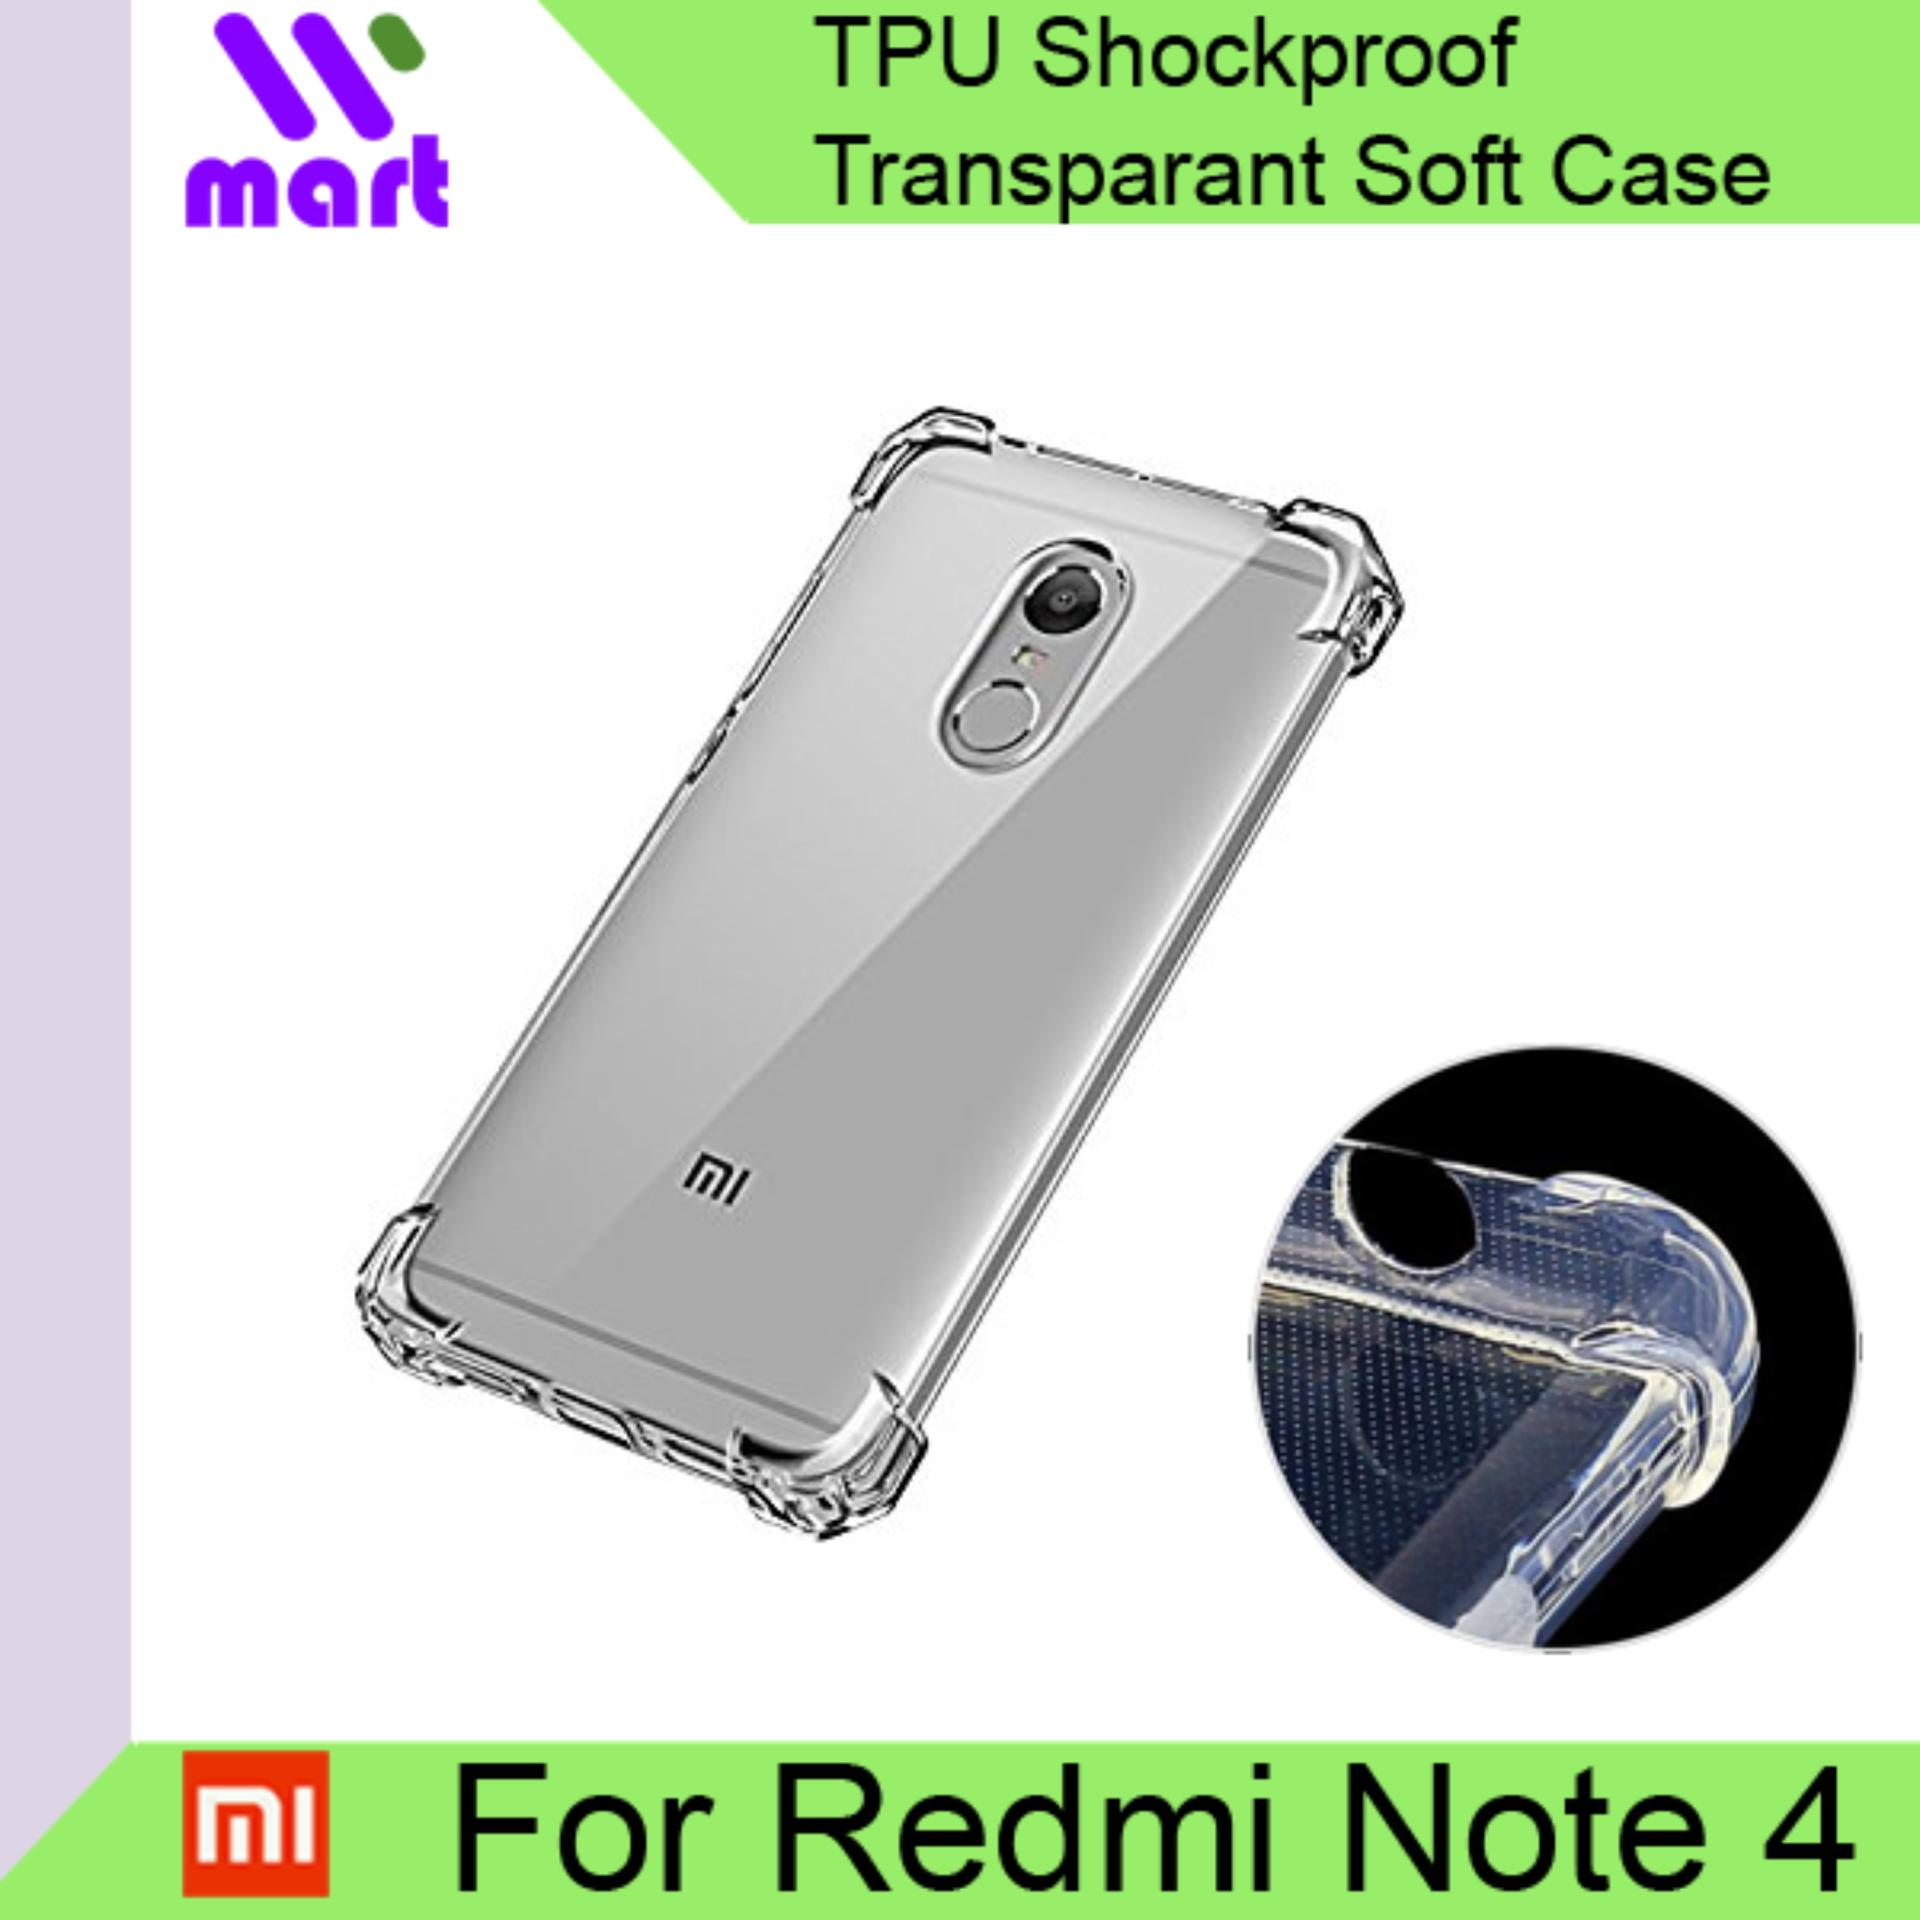 TPU Shockproof Transparent Soft Case For Xiaomi Redmi Note 4